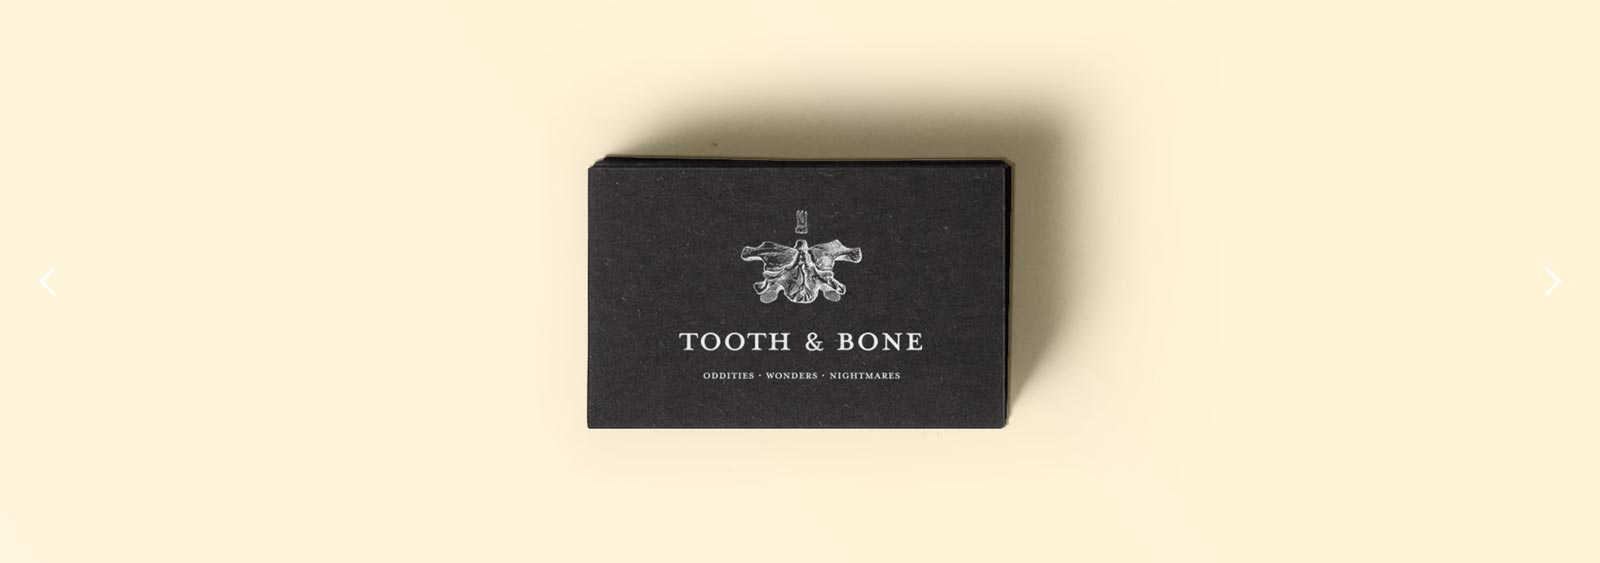 Tooth & Bone brand design by Noisy Ghost Co.